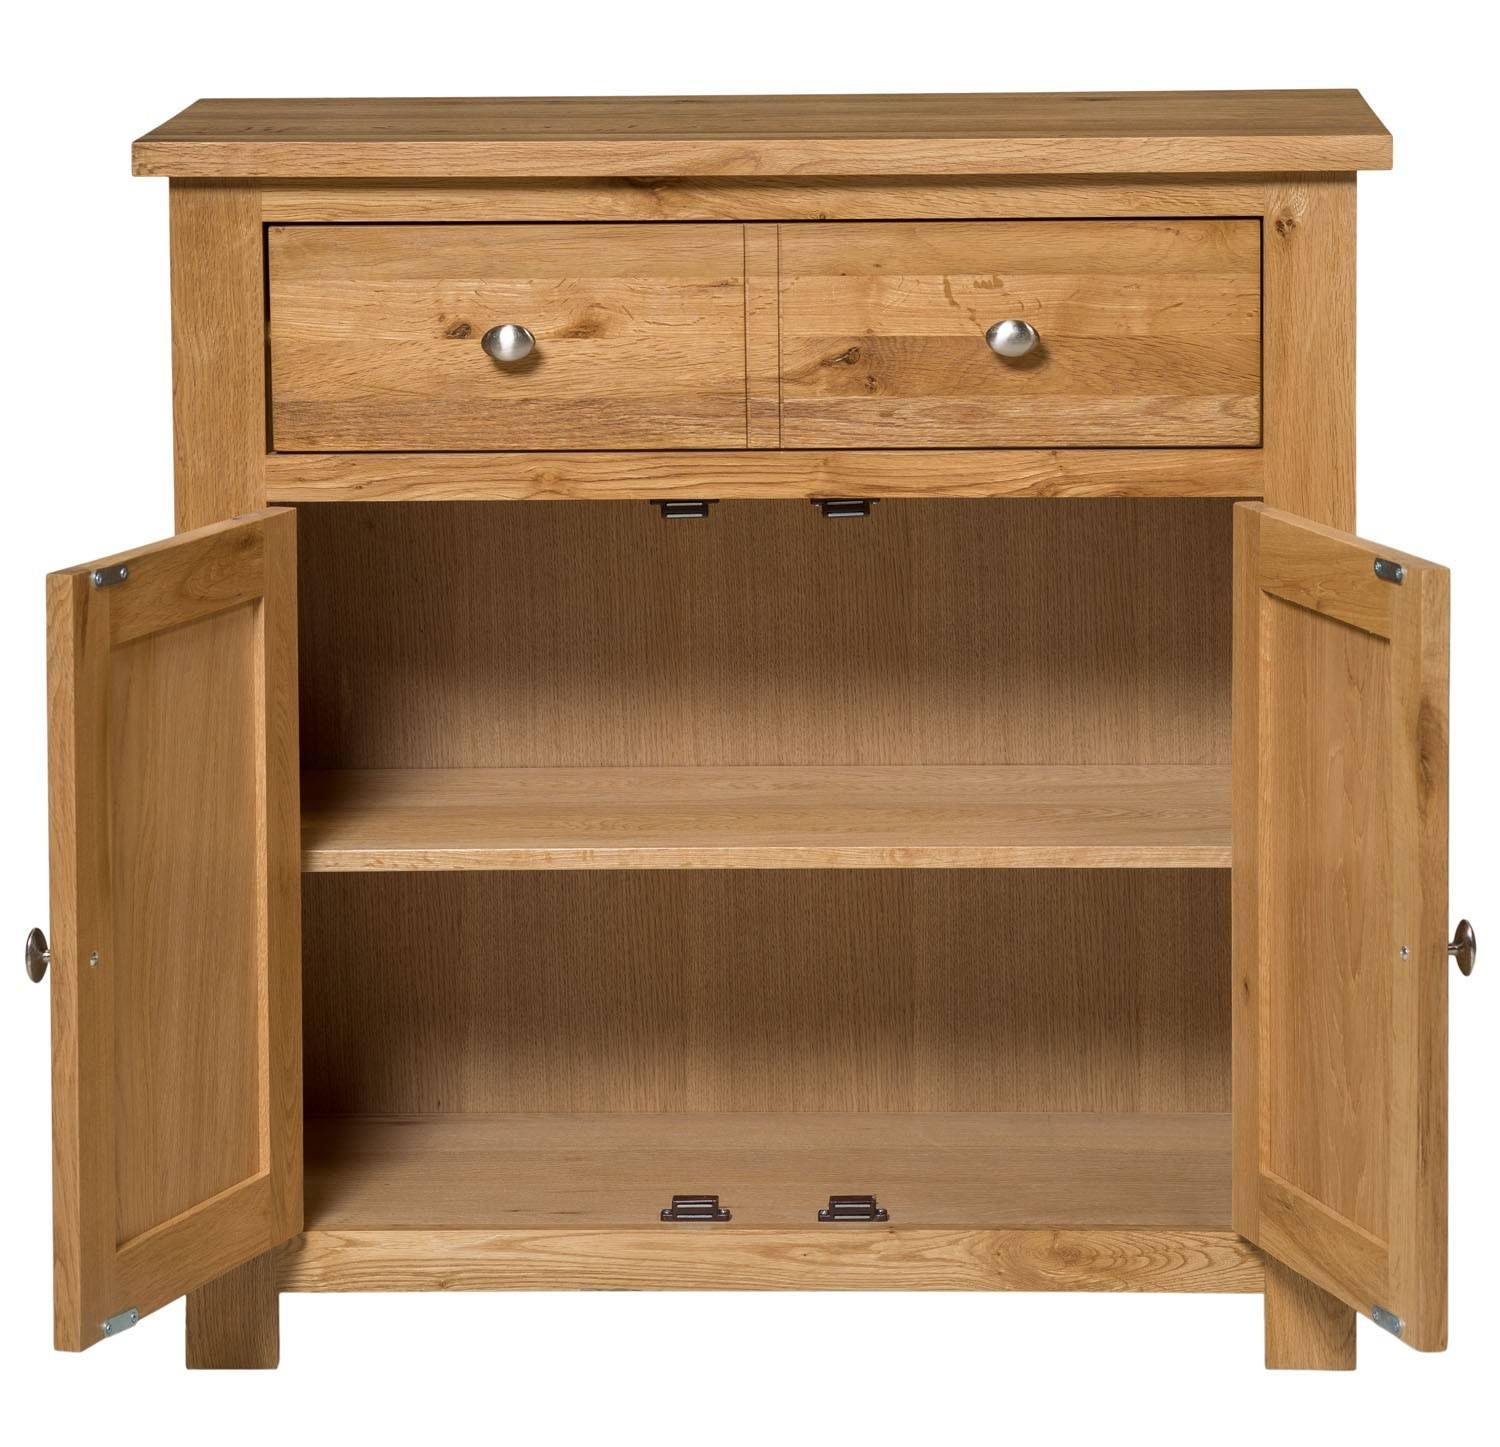 Waverly Oak Compact Sideboard 2 Doors 1 Drawer | Hallowood within Light Oak Sideboards (Image 30 of 30)